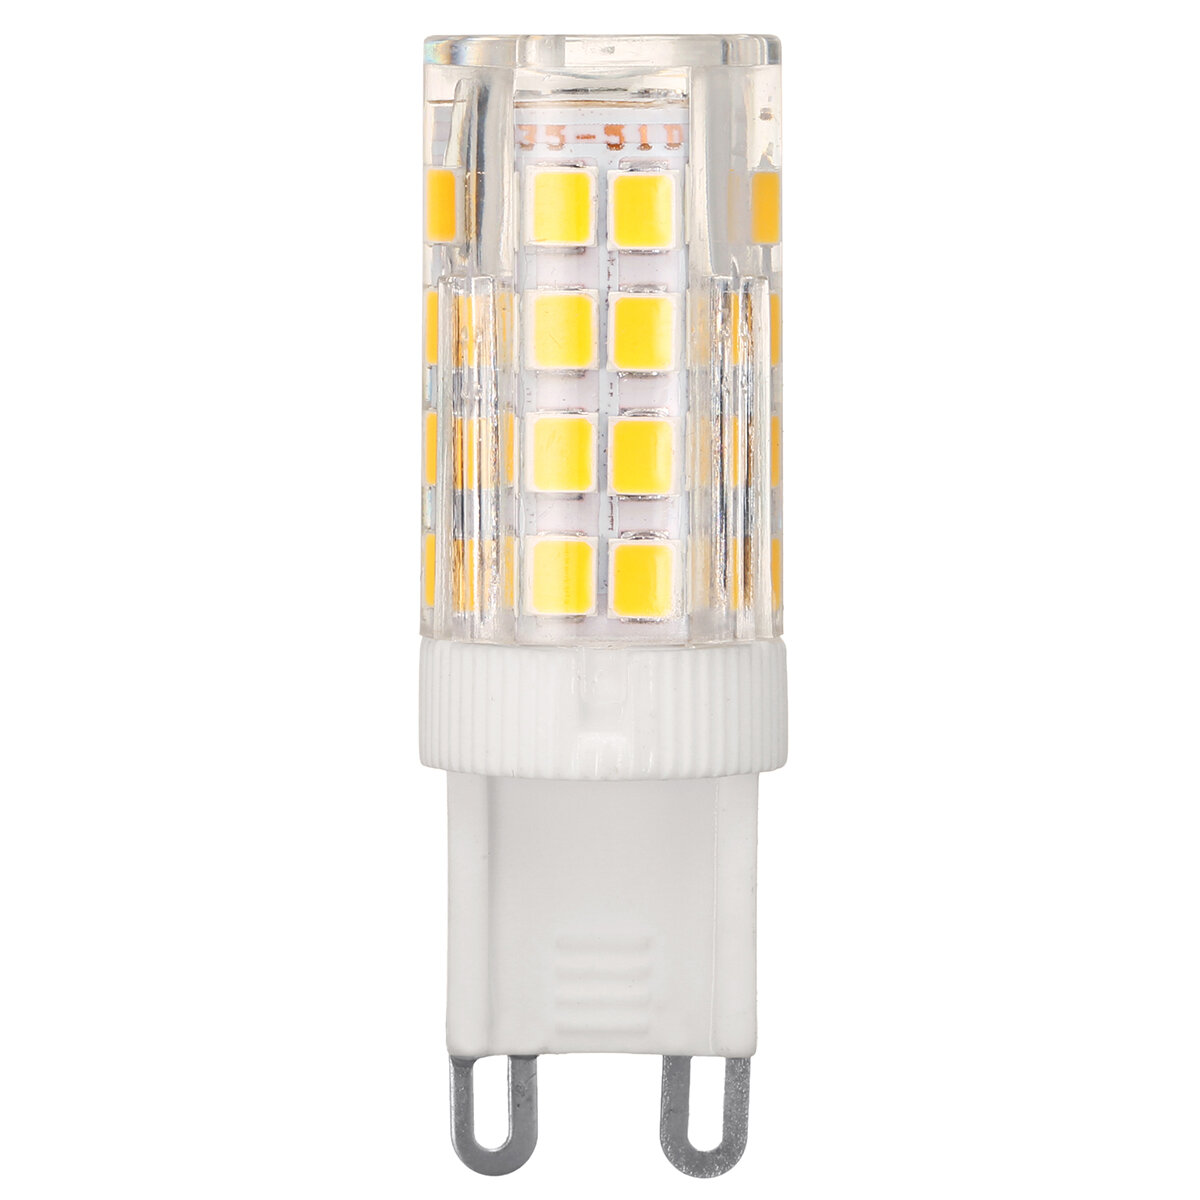 AC110-240V 9W G9 SMD2835 Non-dimmable 75 LED Ceramic Corn Light Bulb for Outdoor Home Decoration - 4